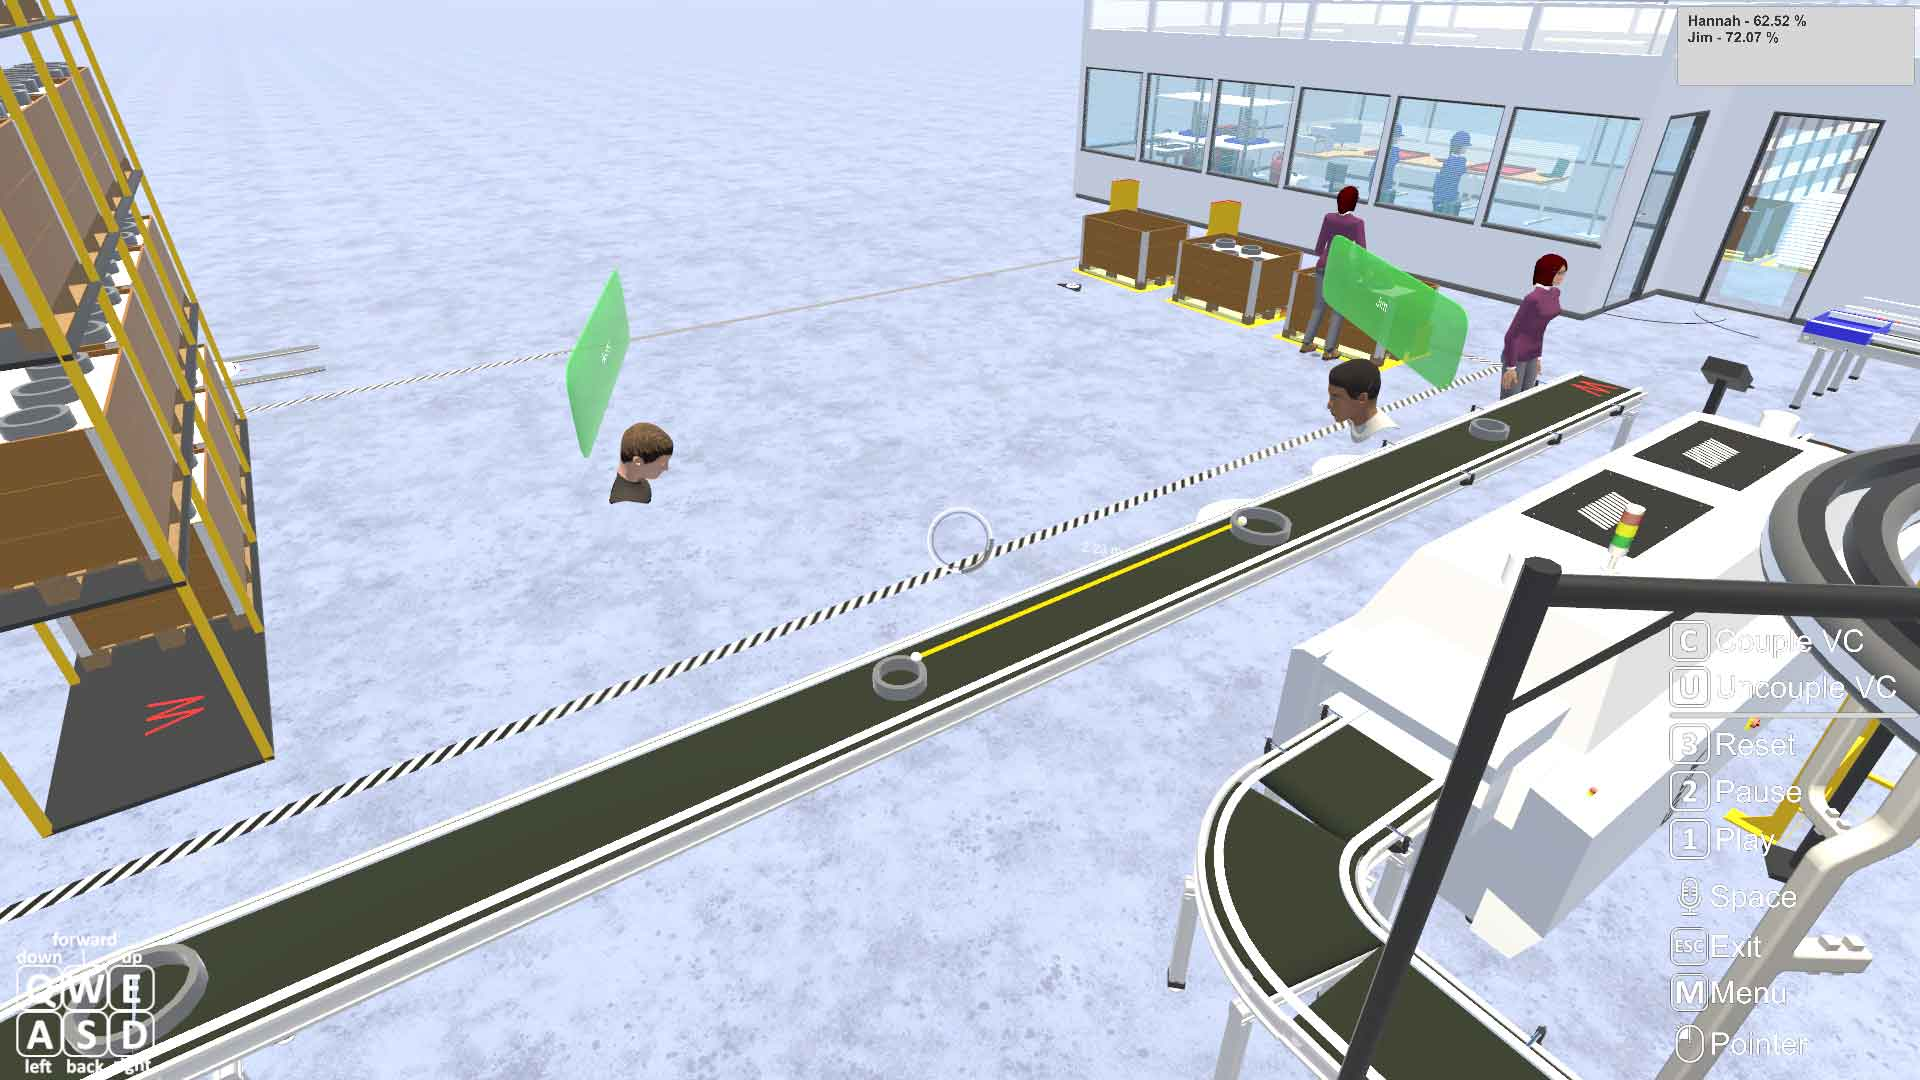 A STAGE simulation of conveyor belt placement